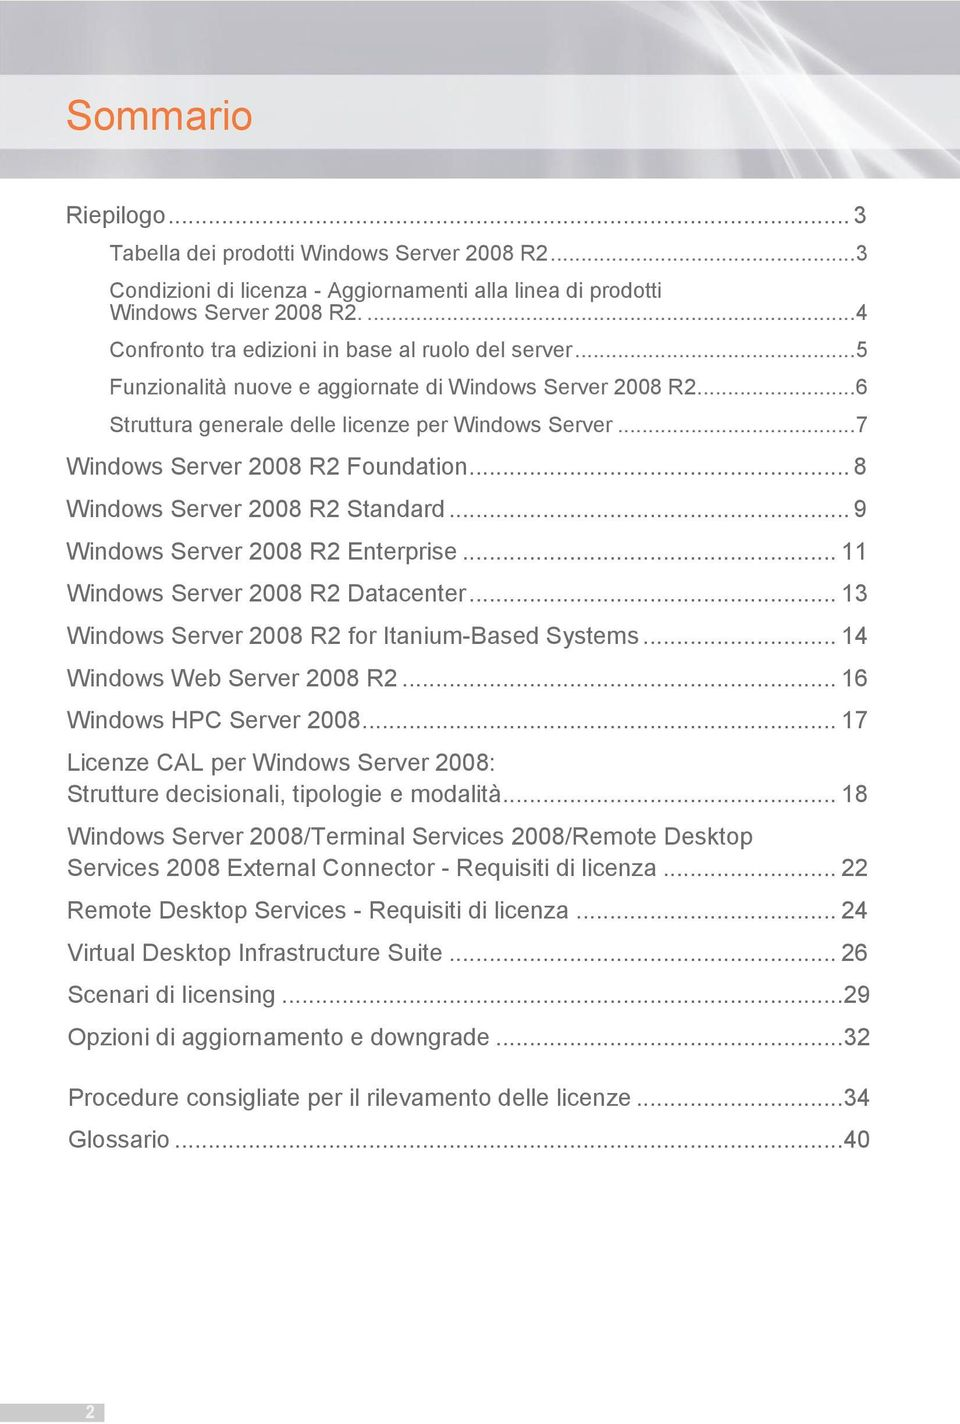 .. 7 Windows Server 2008 R2 Foundation... 8 Windows Server 2008 R2 Standard... 9 Windows Server 2008 R2 Enterprise... 11 Windows Server 2008 R2 Datacenter.